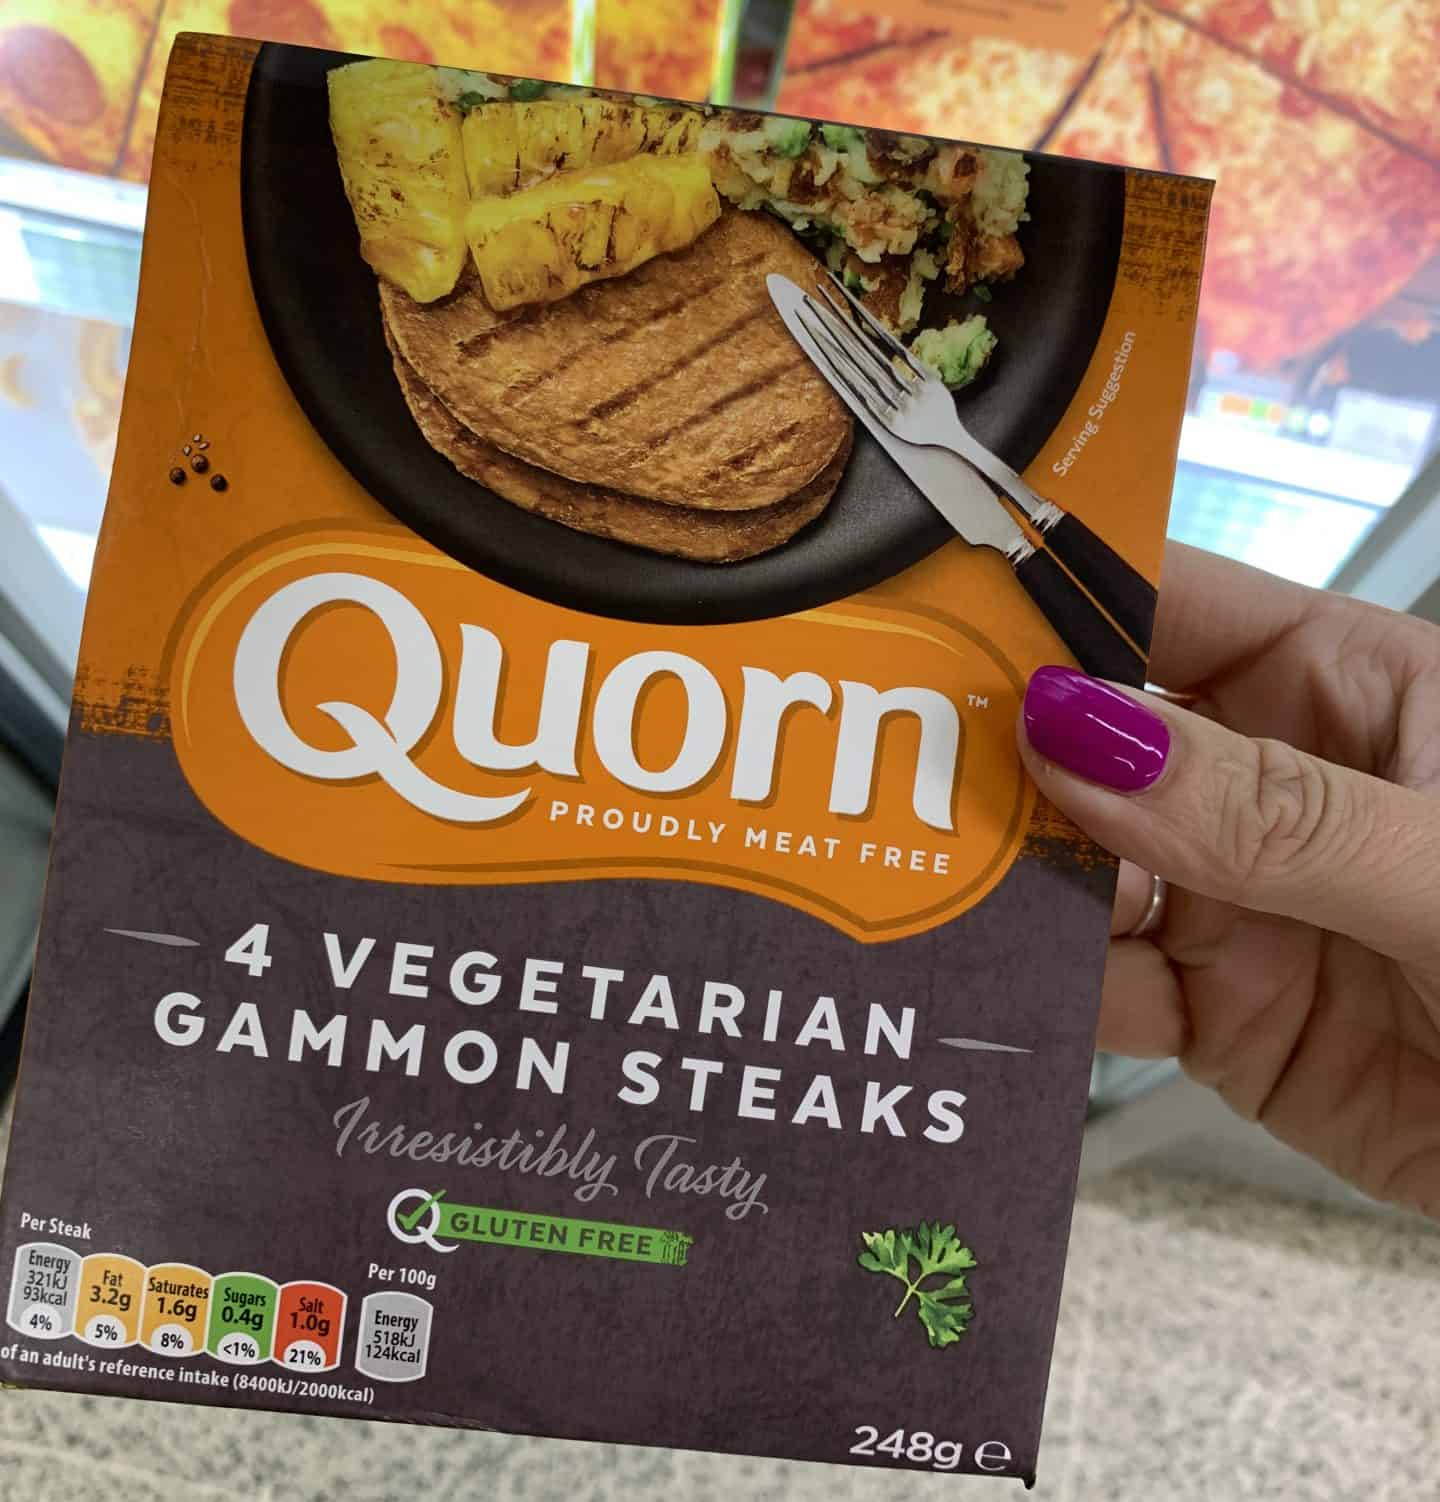 gluten free new products september 2019 1